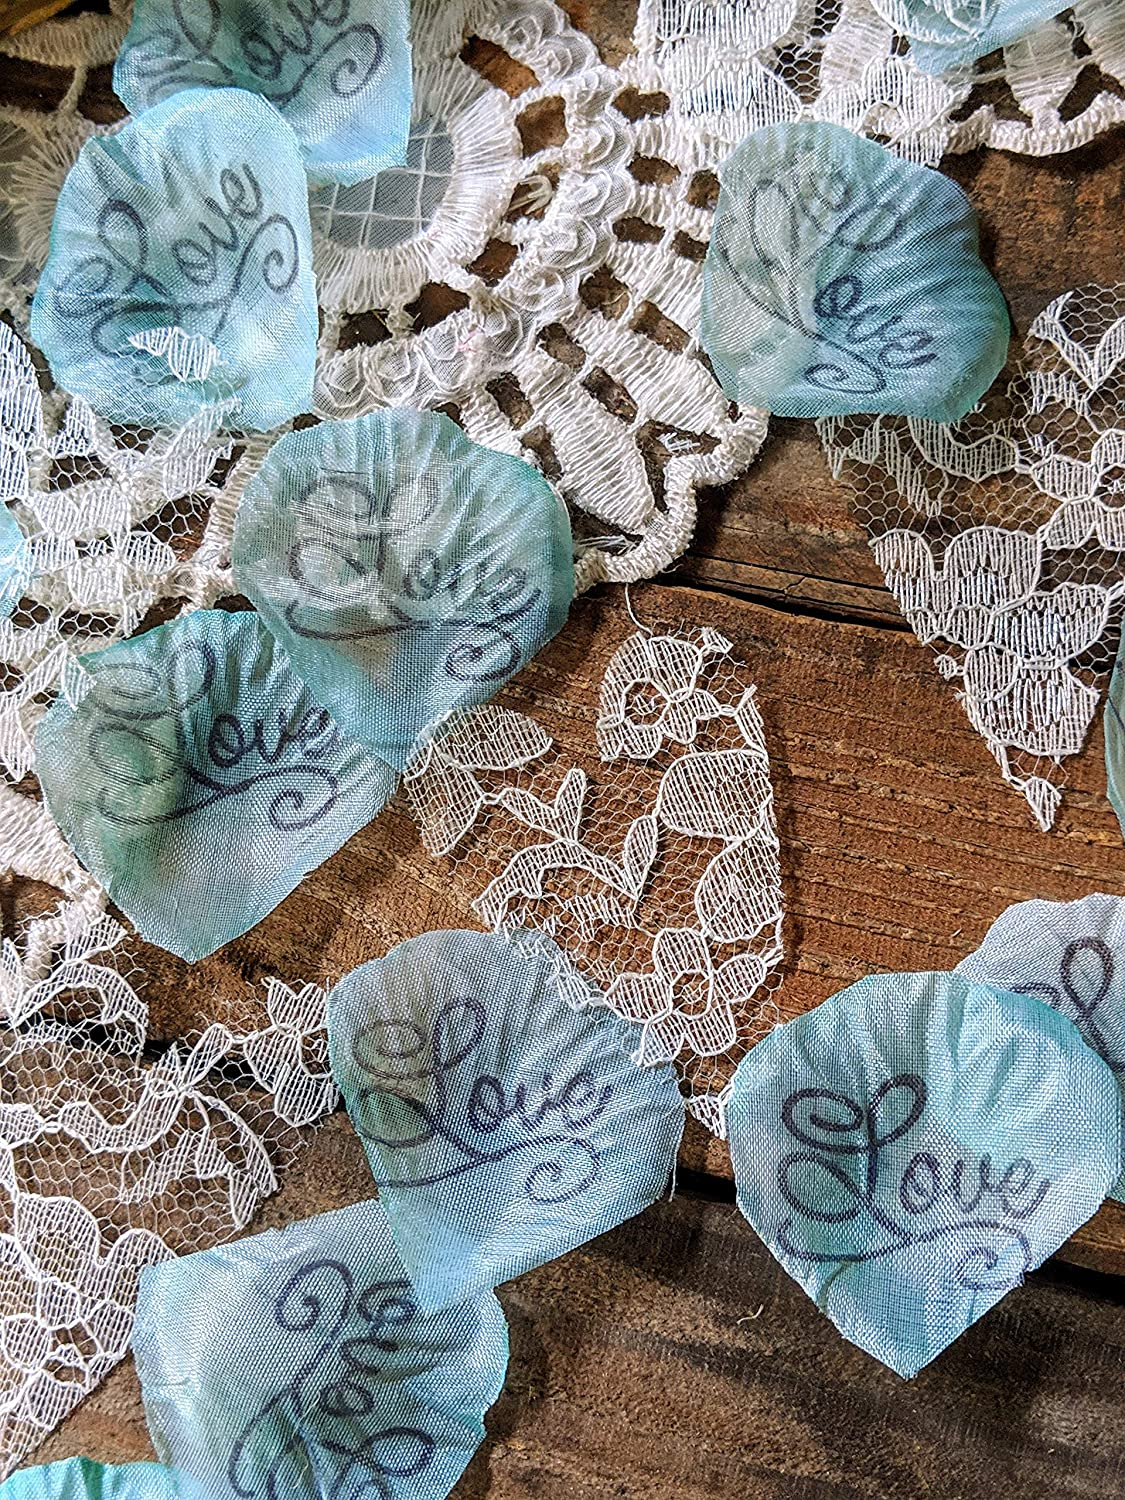 Rose Petals and Flower Confetti Toss for Wedding or Bridal Shower Table Runner Centerpiece Lace